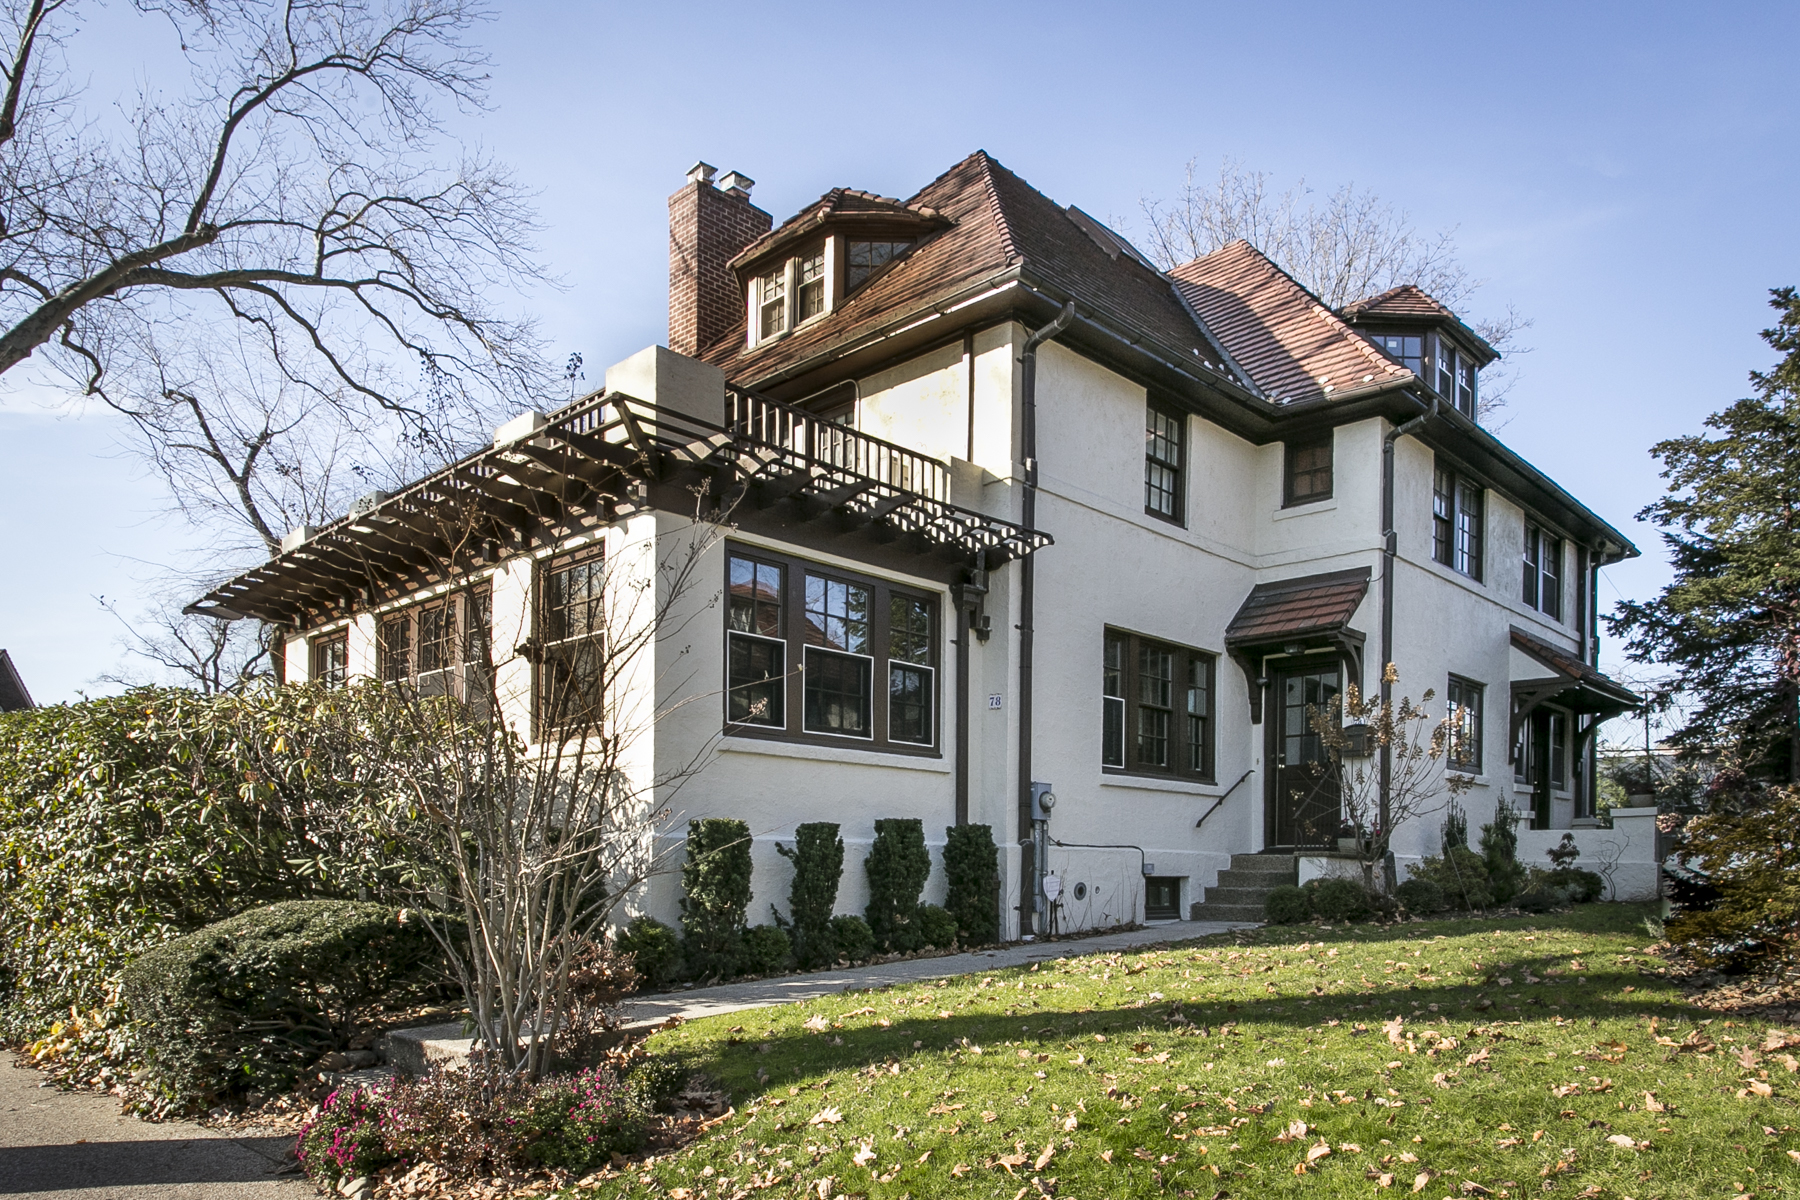 """Single Family Home for Sale at """"COMBINING HISTORIC CHARM WITH UPSCALE CONTEMPORARY AMENITIES"""" 78 Dartmouth Street, Forest Hills Gardens, Forest Hills, New York 11375 United States"""